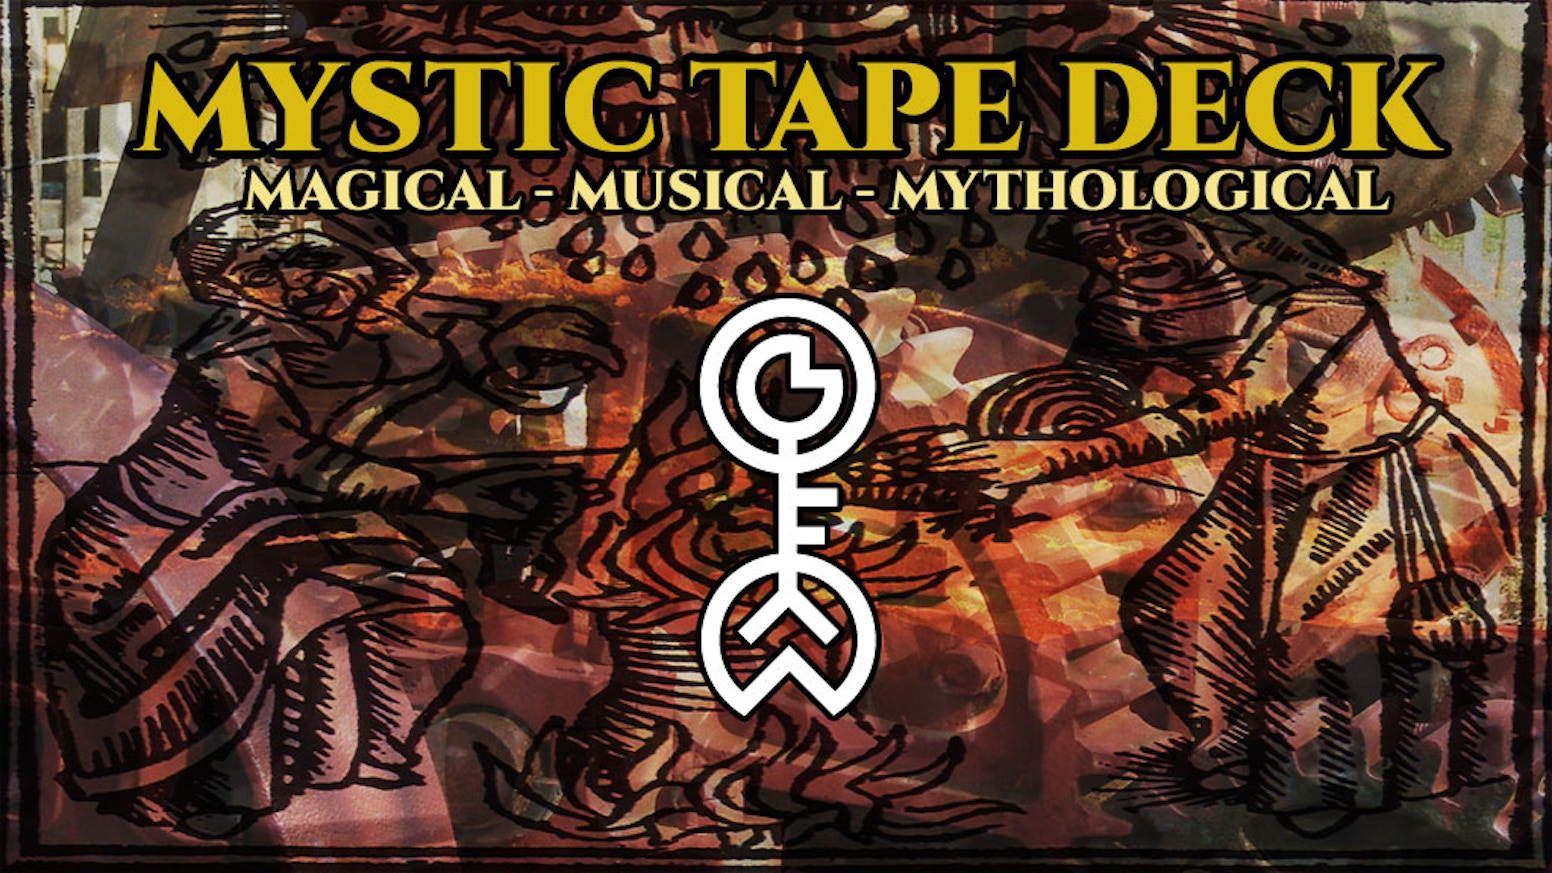 The inaugural release from Boise's enigmatic music and art collective has been FUNDED!